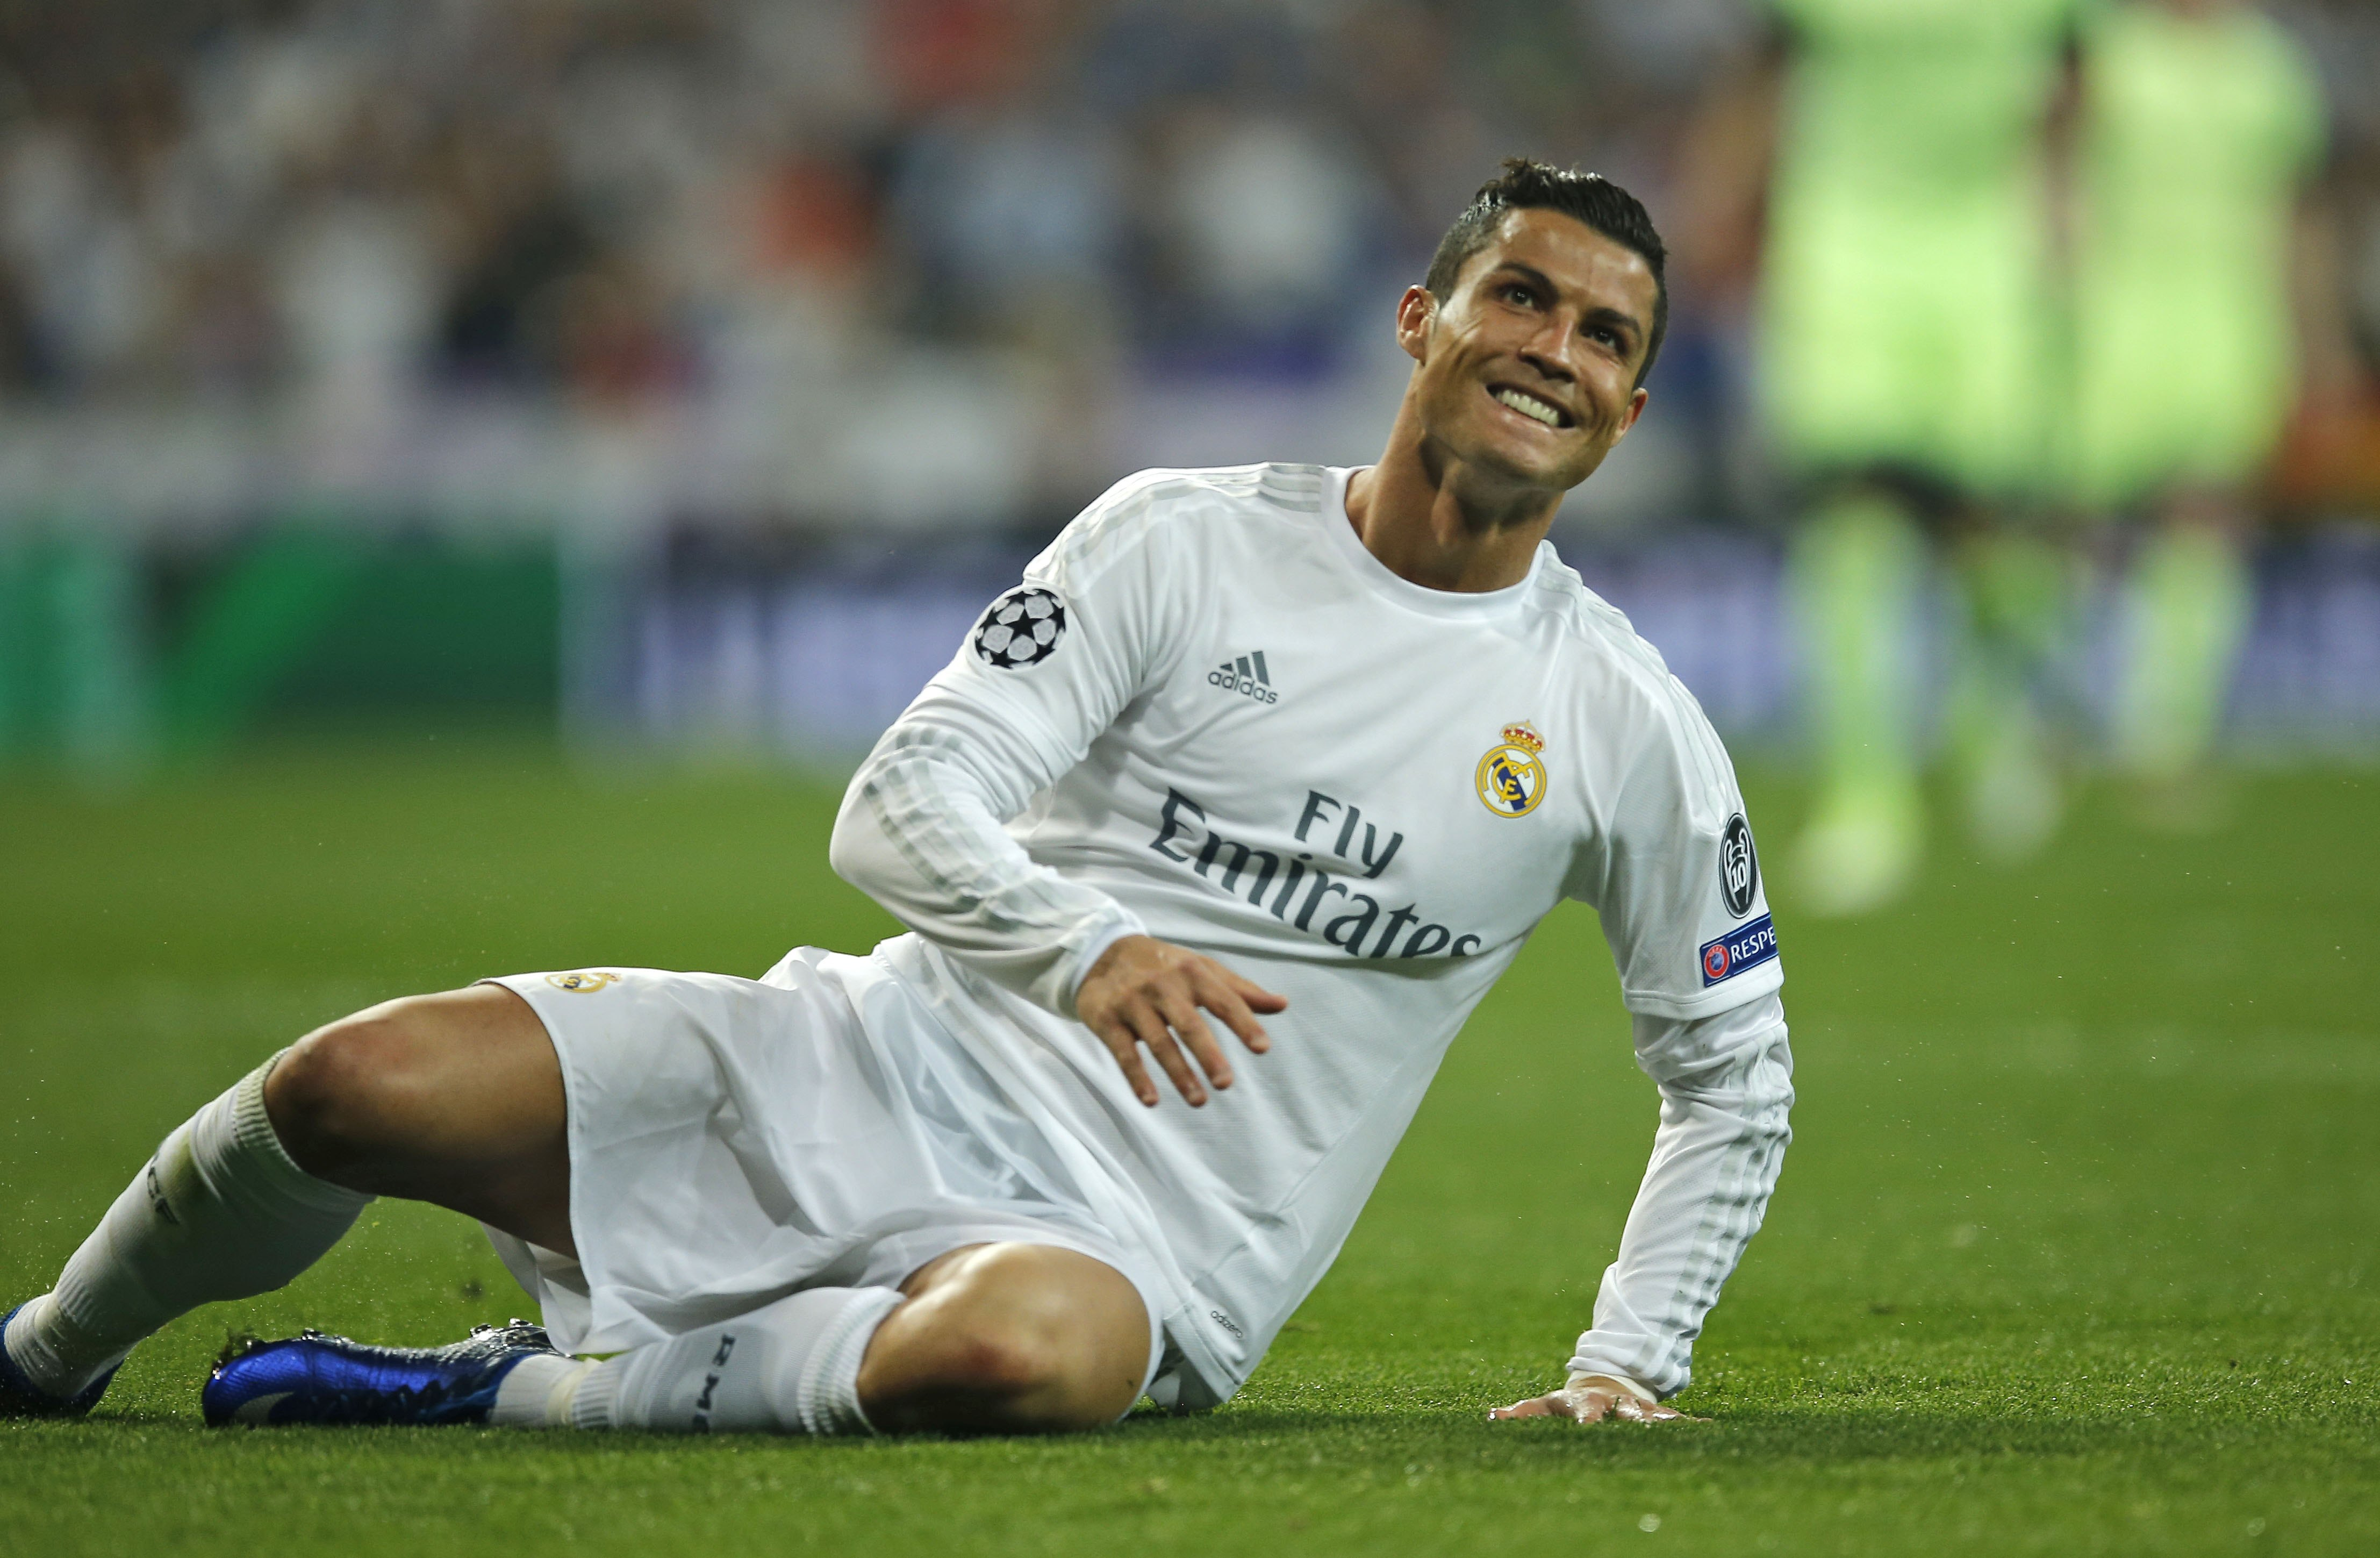 Real Madrid's Cristiano Ronaldo reacts after missing a chance during the Champions League semifinal second leg soccer match between Real Madrid and Manchester City at the Santiago Bernabeu stadium in Madrid, Wednesday May 4, 2016. Photo: AP